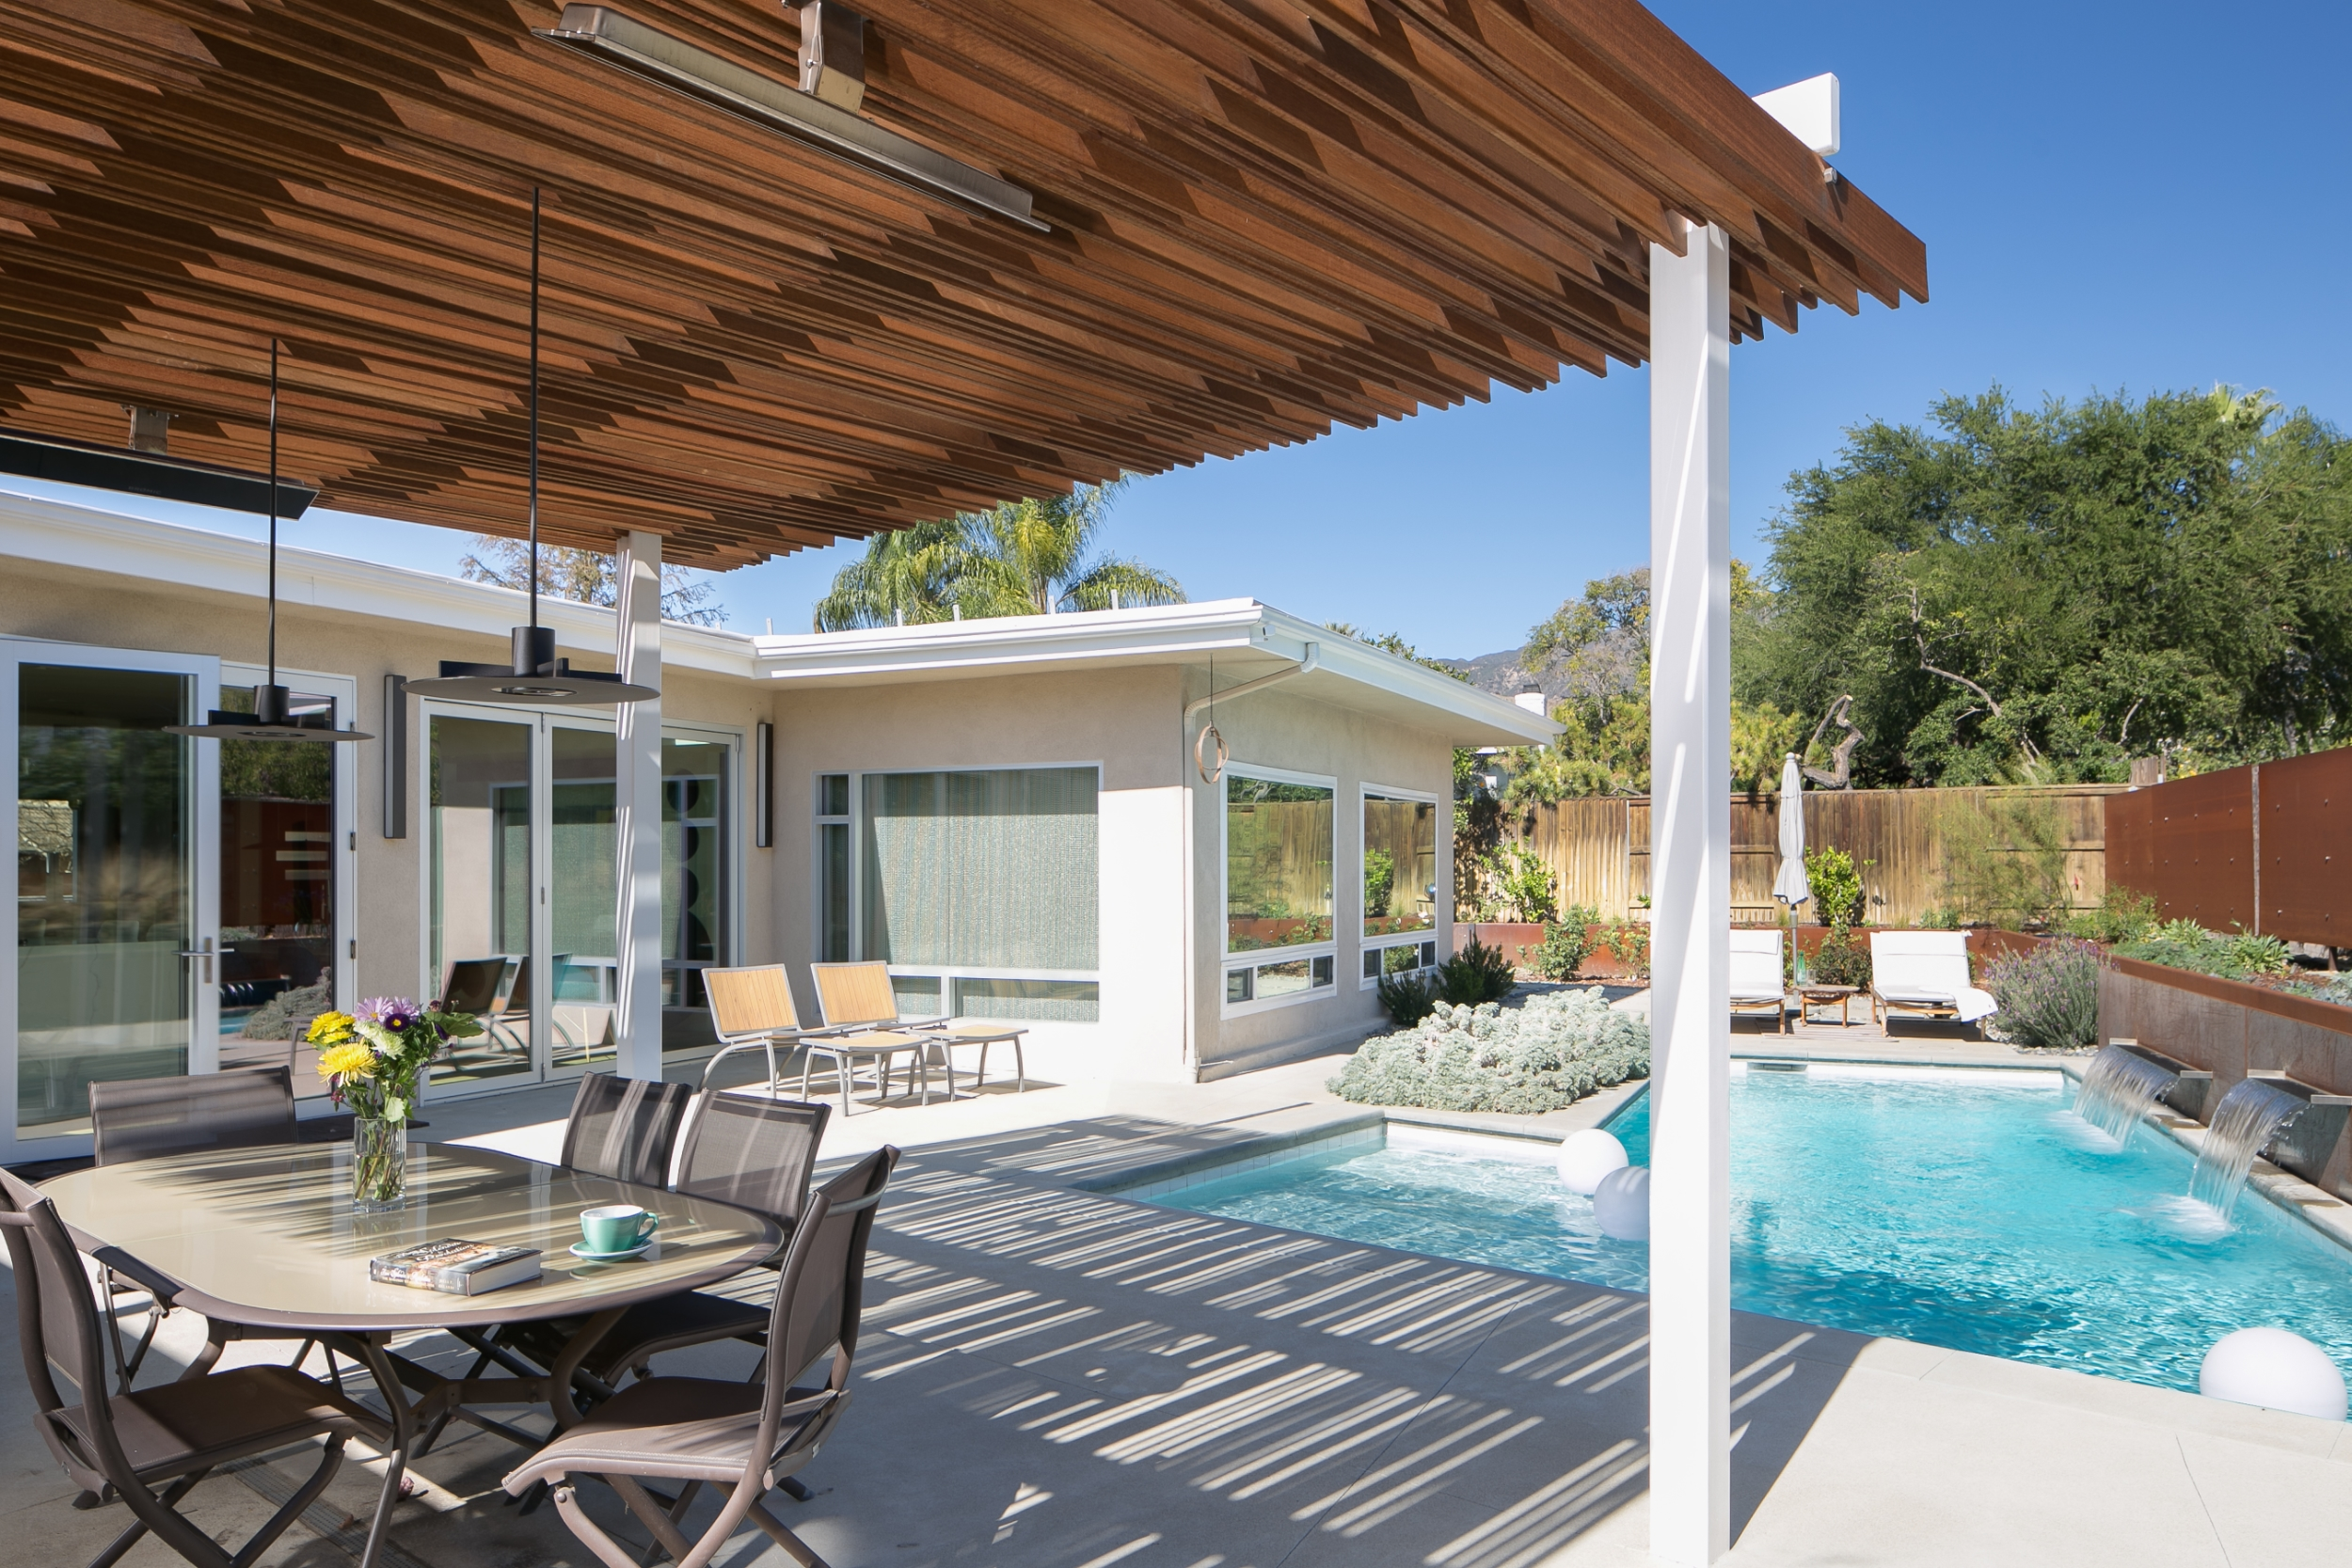 Mid-century modern backyard with water-wise landscaping, a pool accentuated with waterfall spillways off of a Corten steel wall, and a pergola for outdoor dining